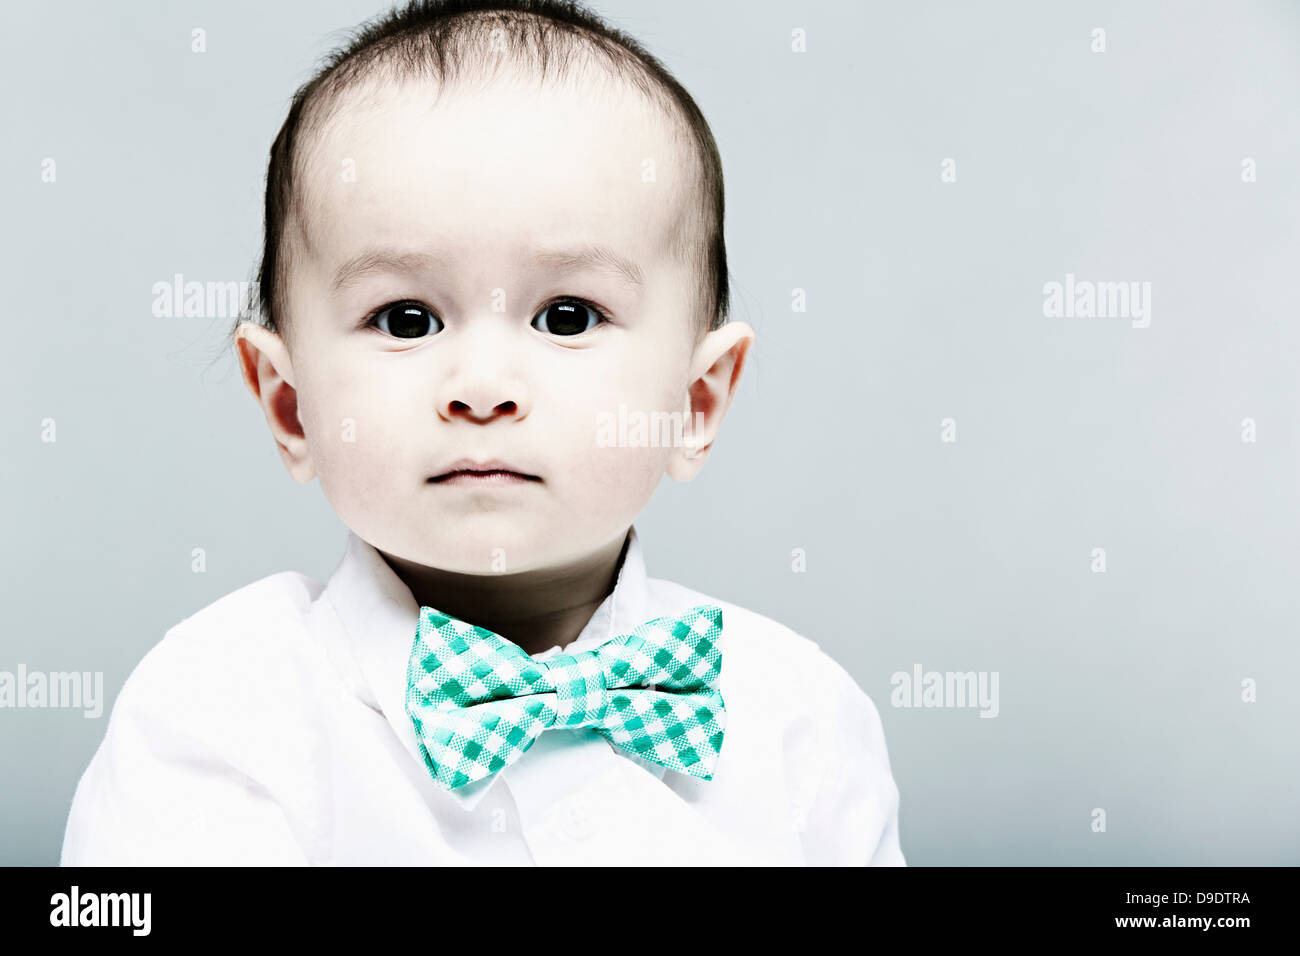 Portrait of baby boy wearing shirt and bow tie - Stock Image